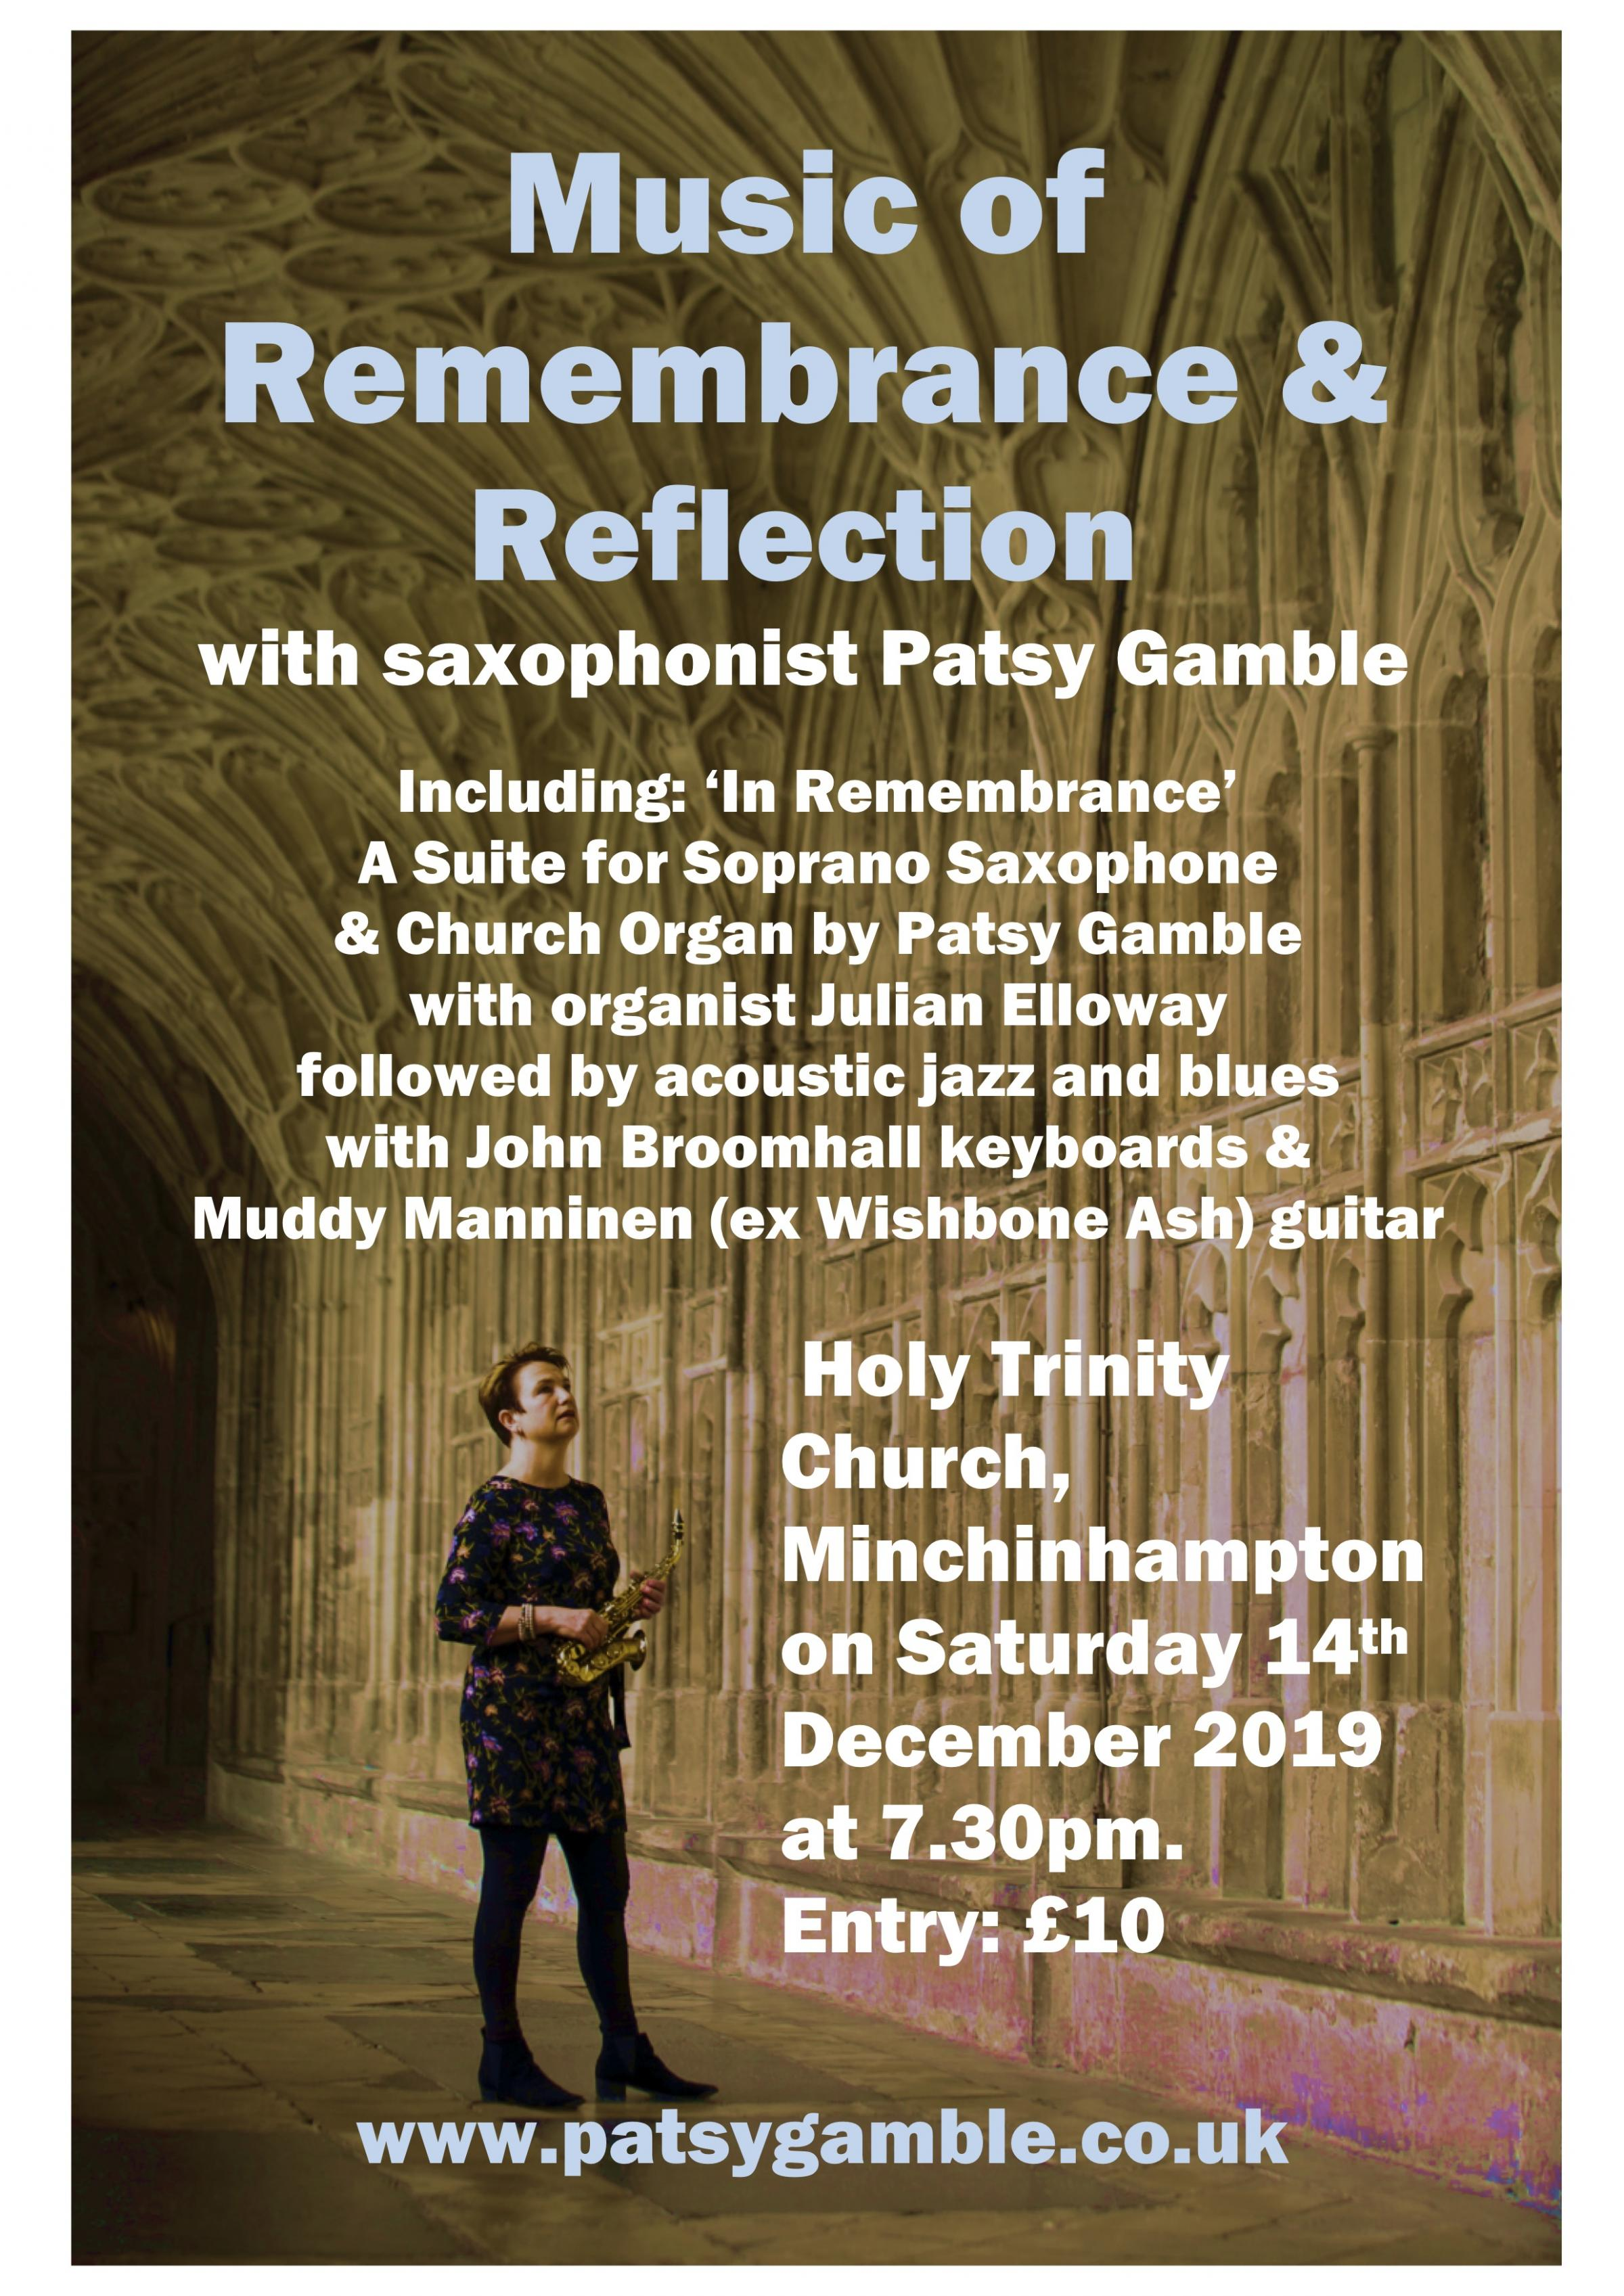 Music of Remembrance & Reflection